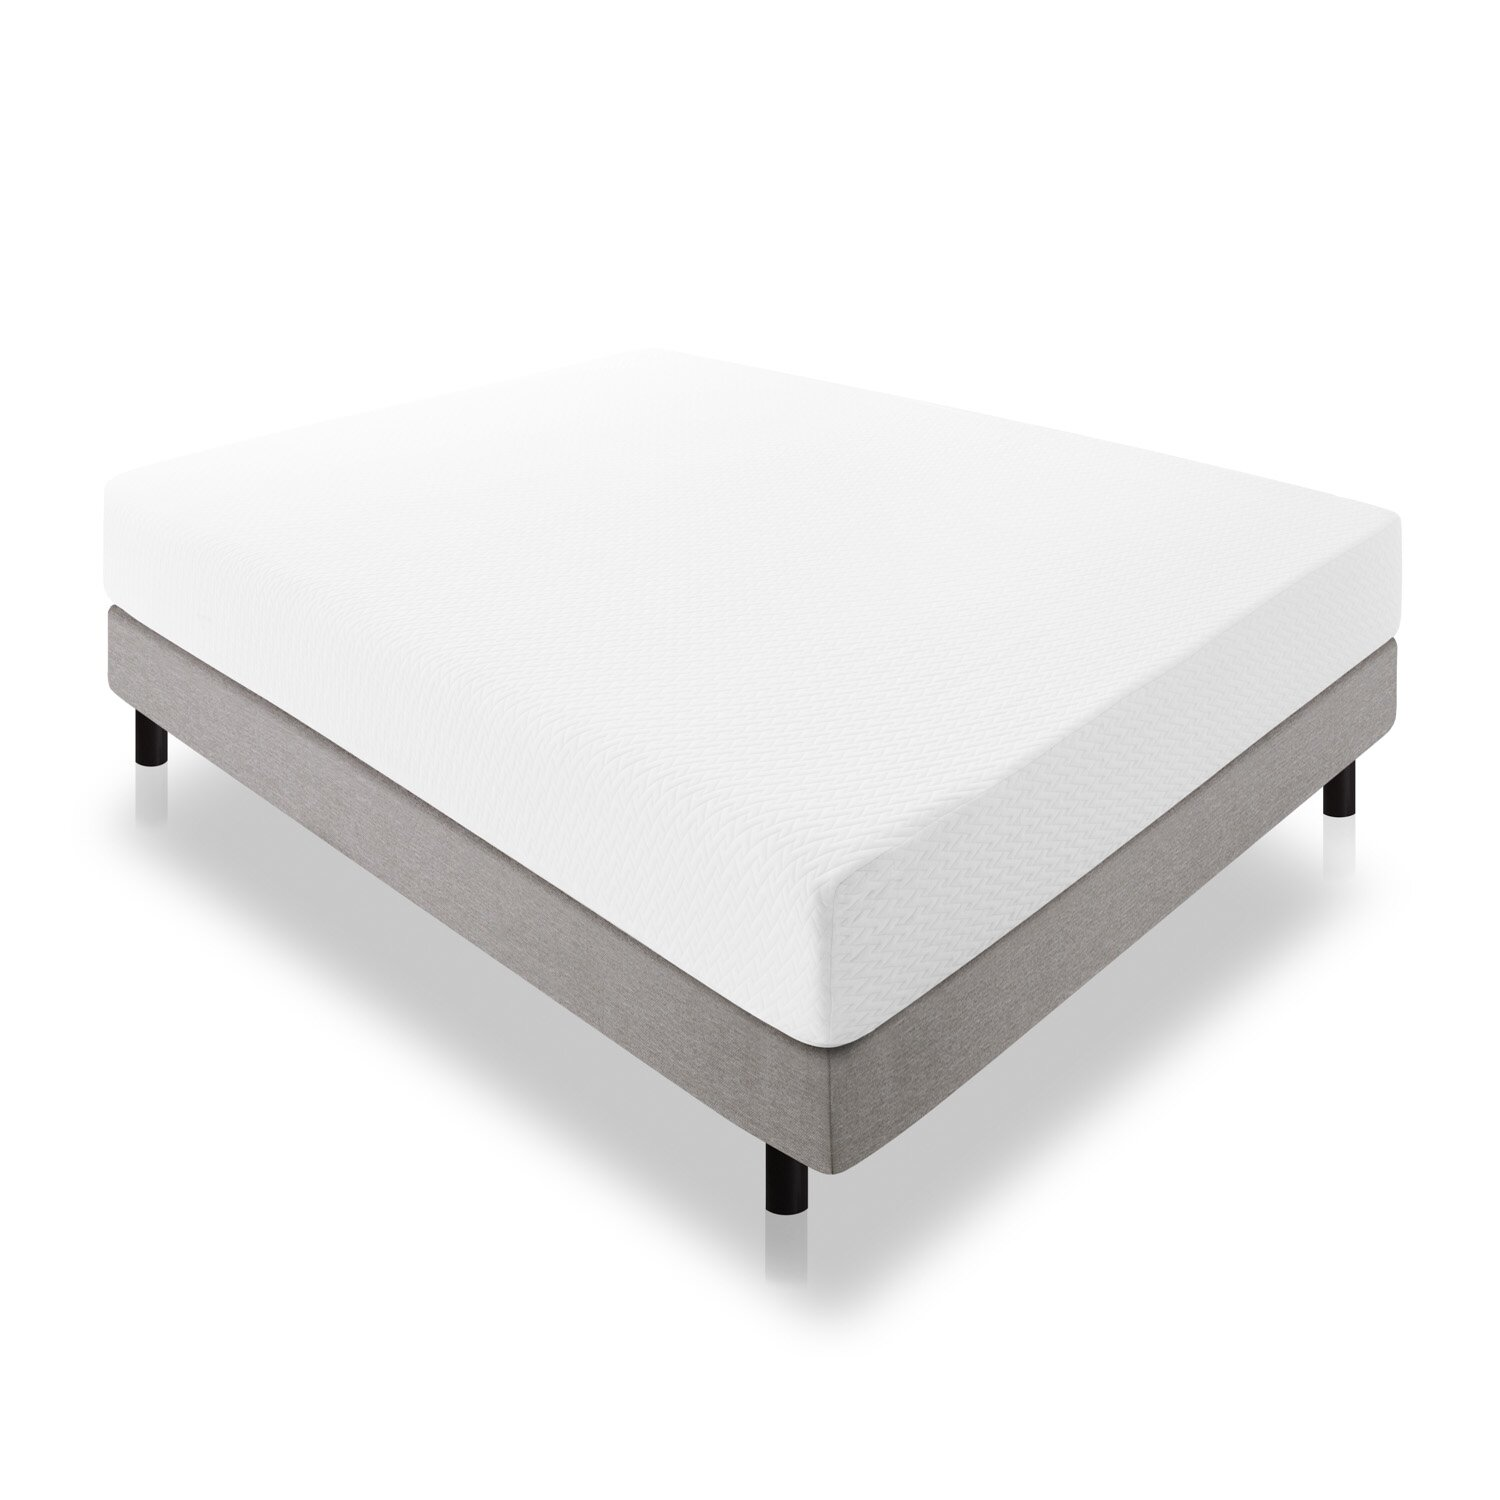 "Lucid 10"" Medium Plush Gel Memory Foam Mattress & Reviews"